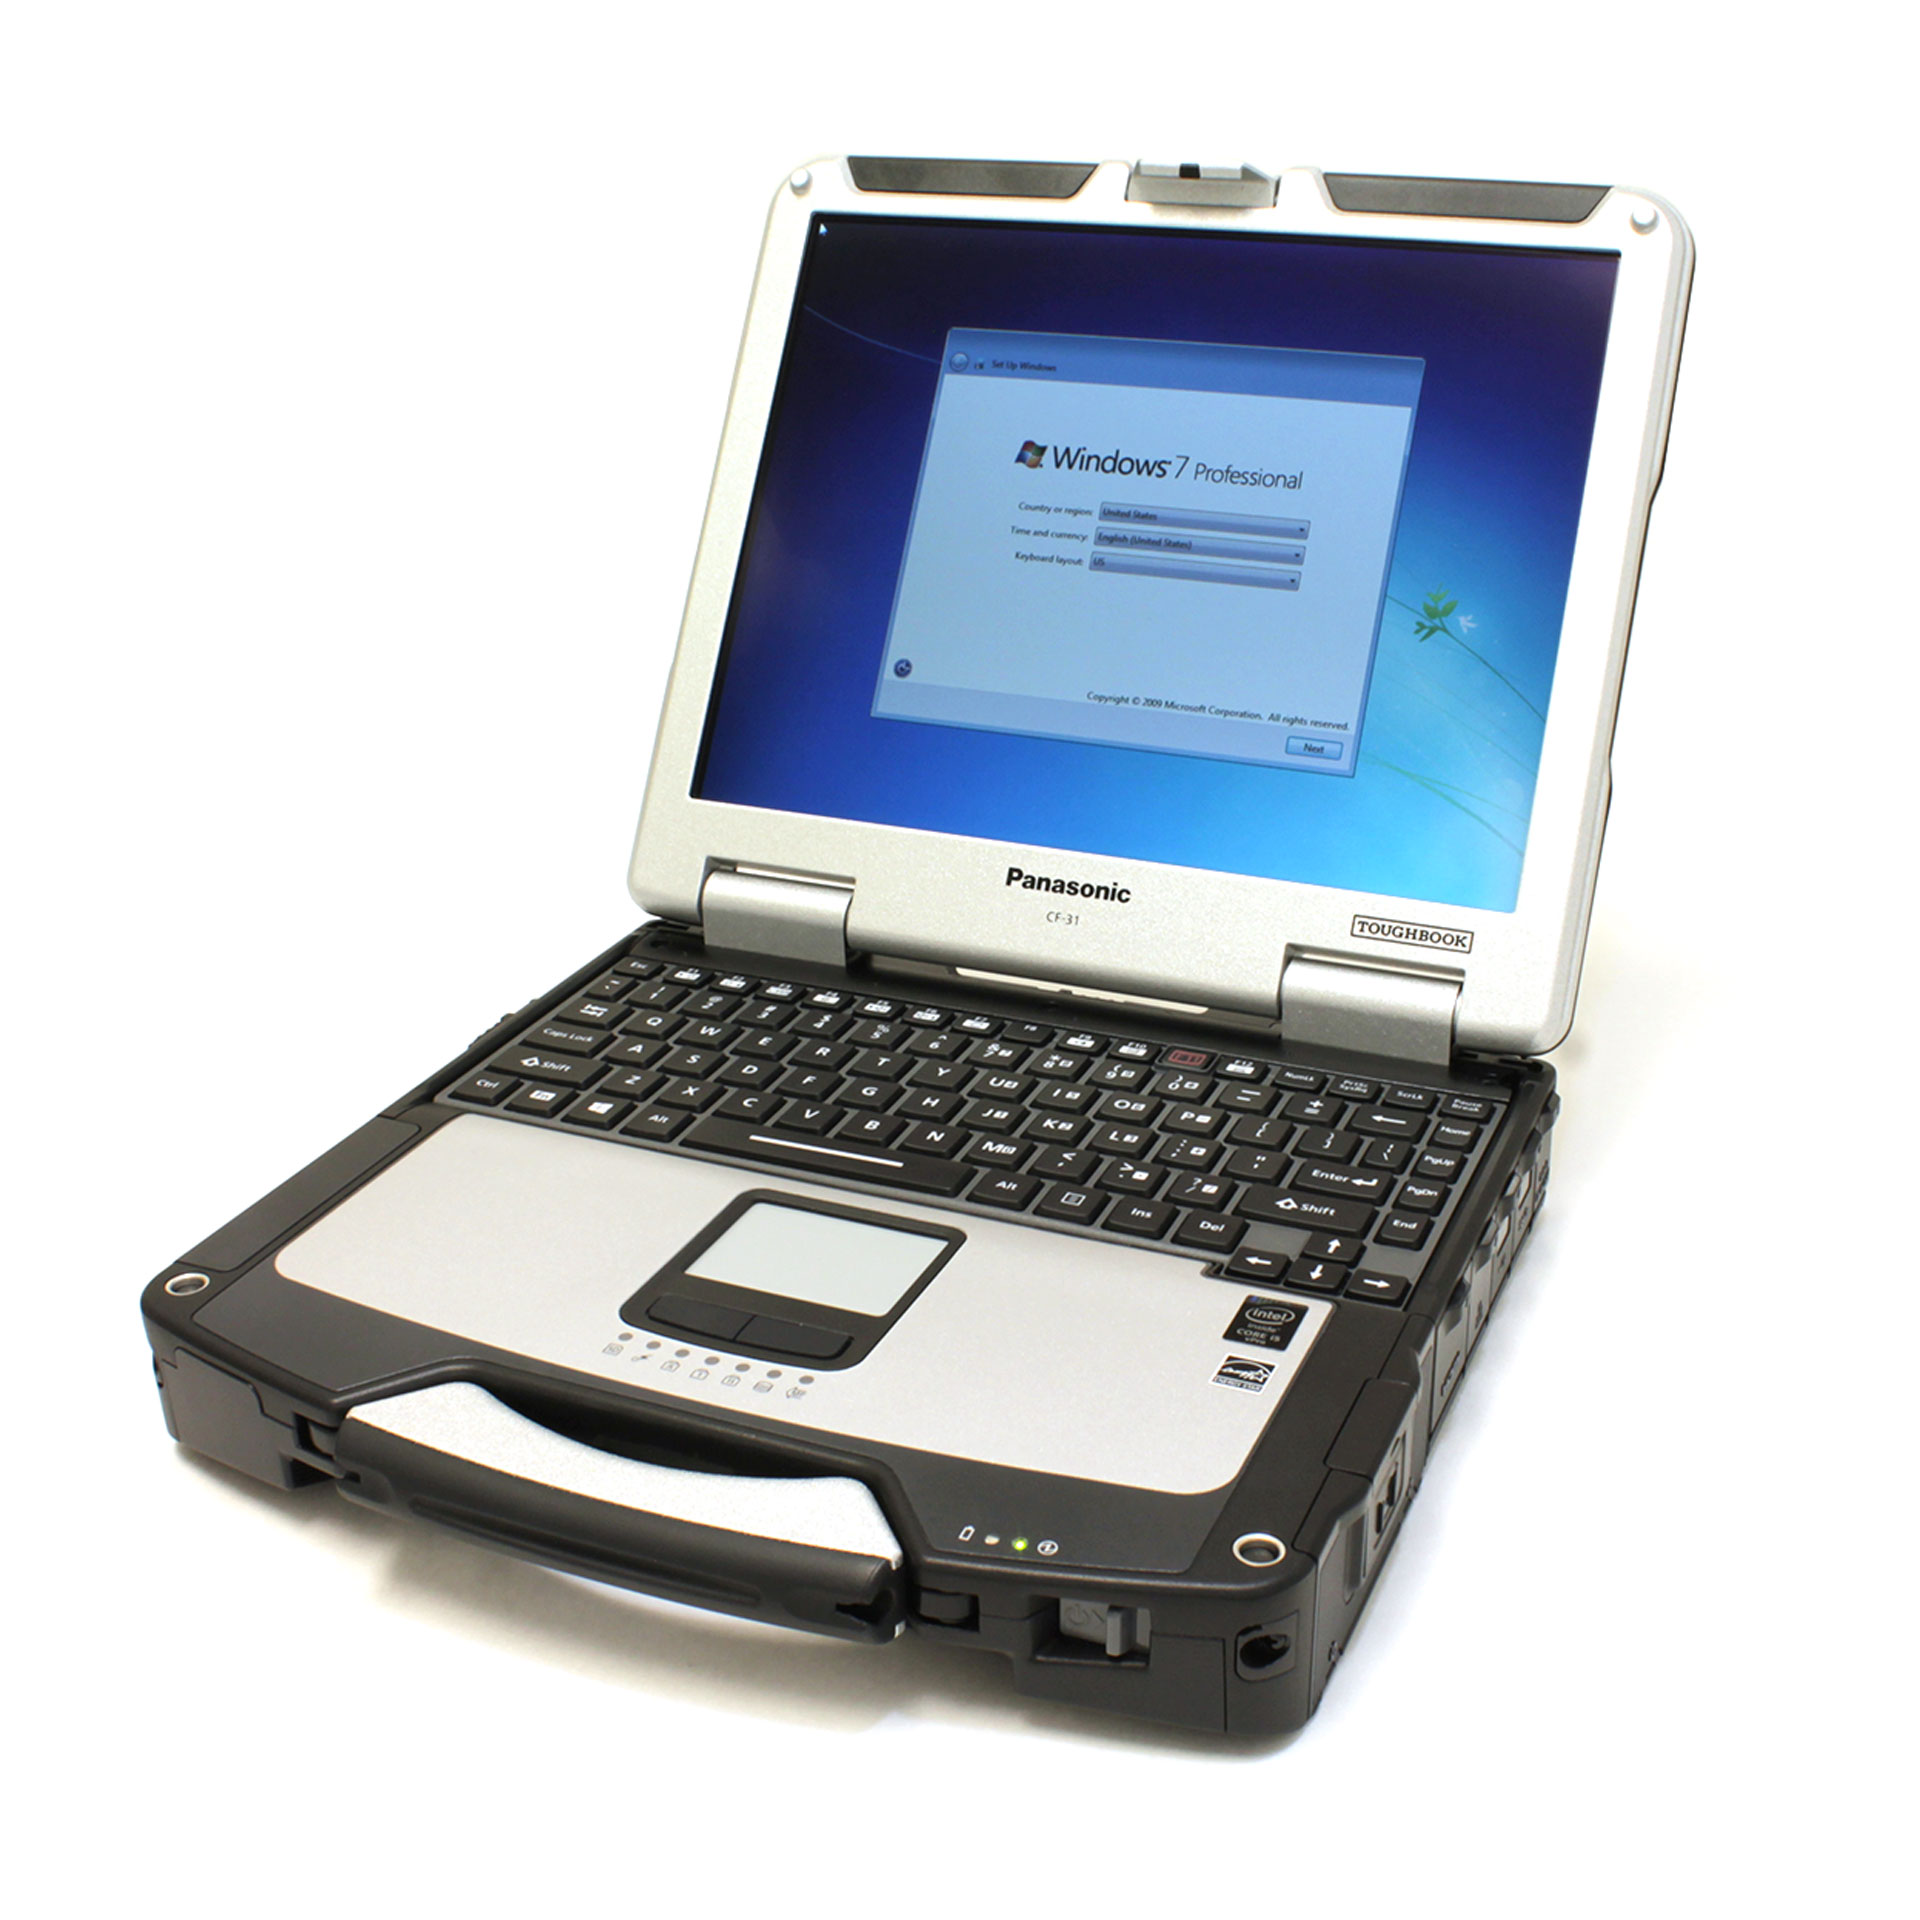 Panasonic Toughbook 31 13.1 Core i5 5300U 4GB/500GB CF-3110672KM